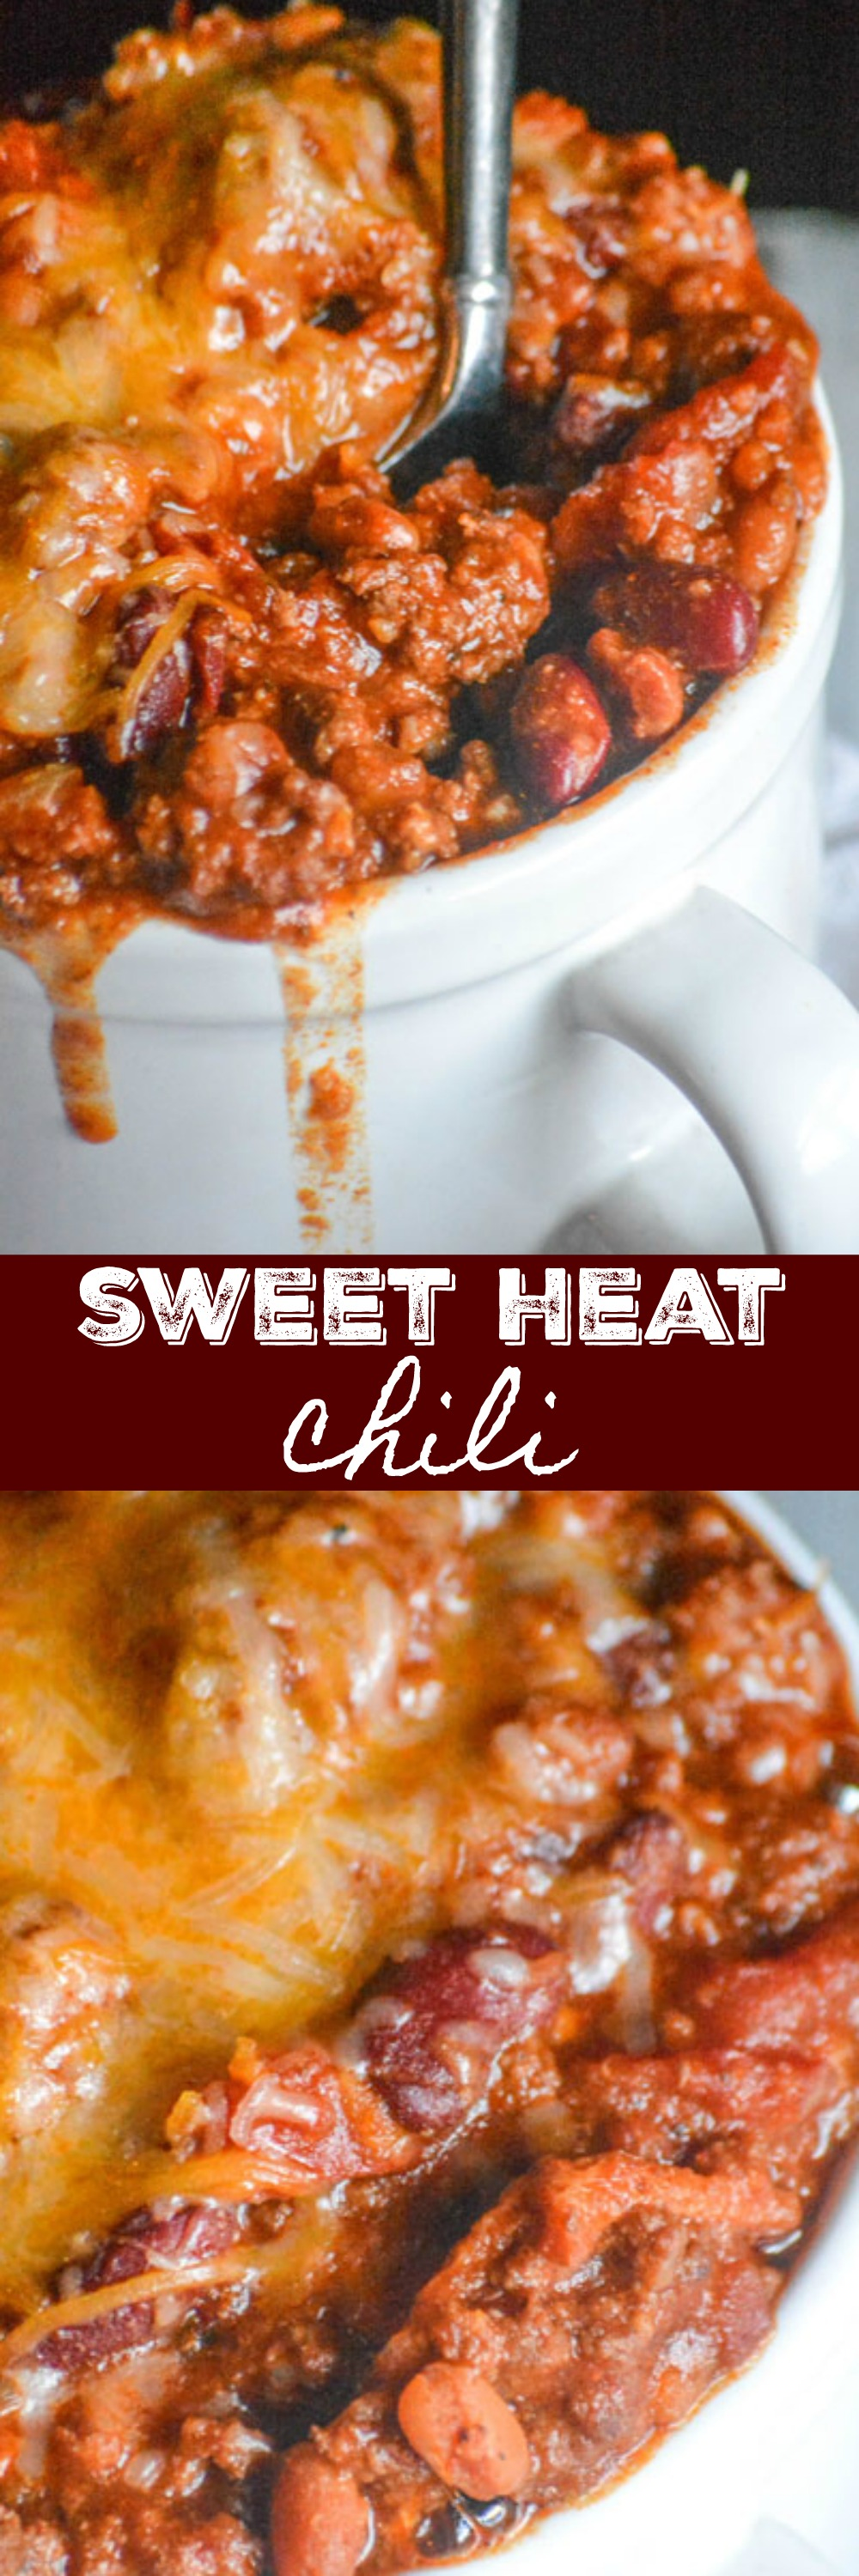 A hearty dish that beautifully blends savory spices with sweet flavor notes, this Sweet Heat Chili is a quick & easy Winter meal by the bowlful. One pot is all you need making it perfect for any crowd, be it a family dinner or feeding hungry fans on game day.